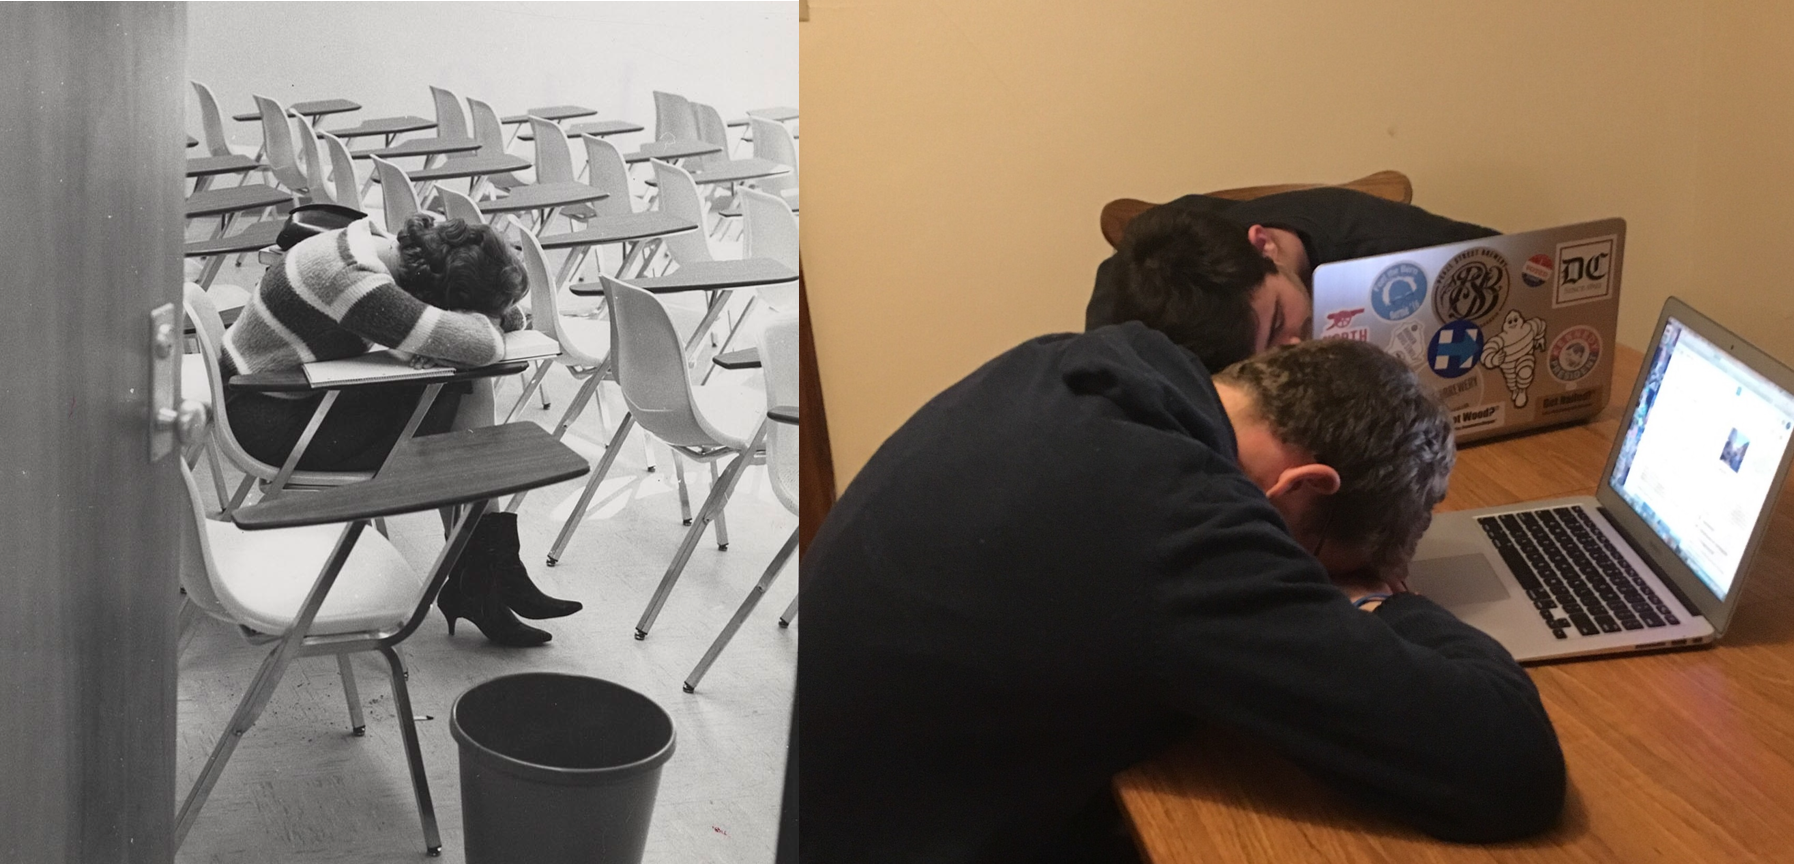 Left: A student rests in a classroom circa 1963. Right: With the end of midterms finally in sight, two students take a break from late-night studying.